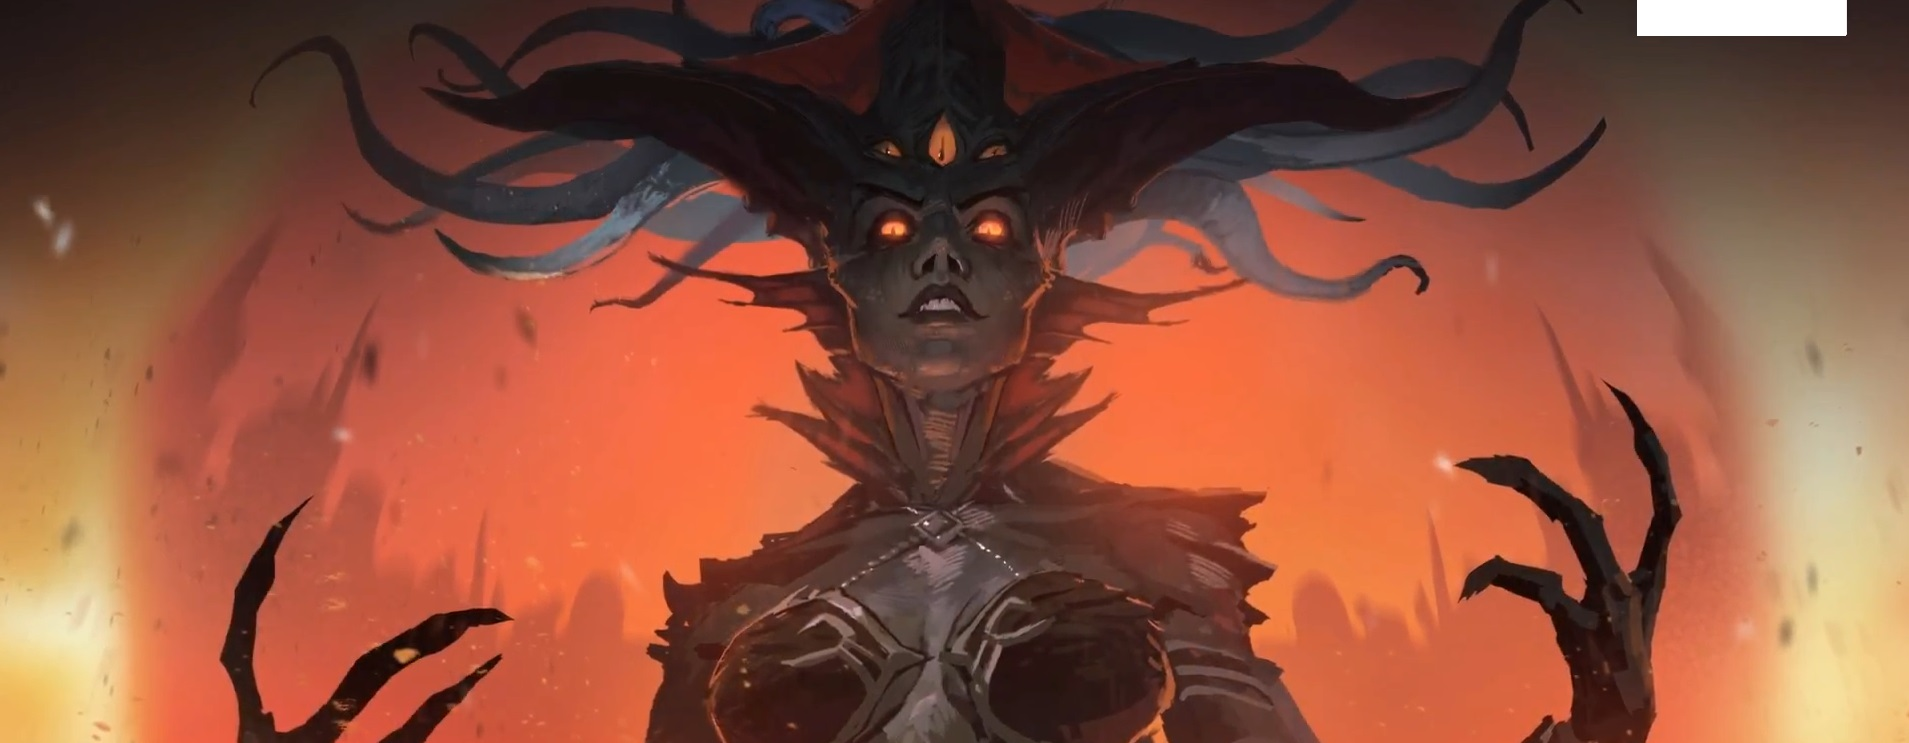 WoW Azshara Queen title 2